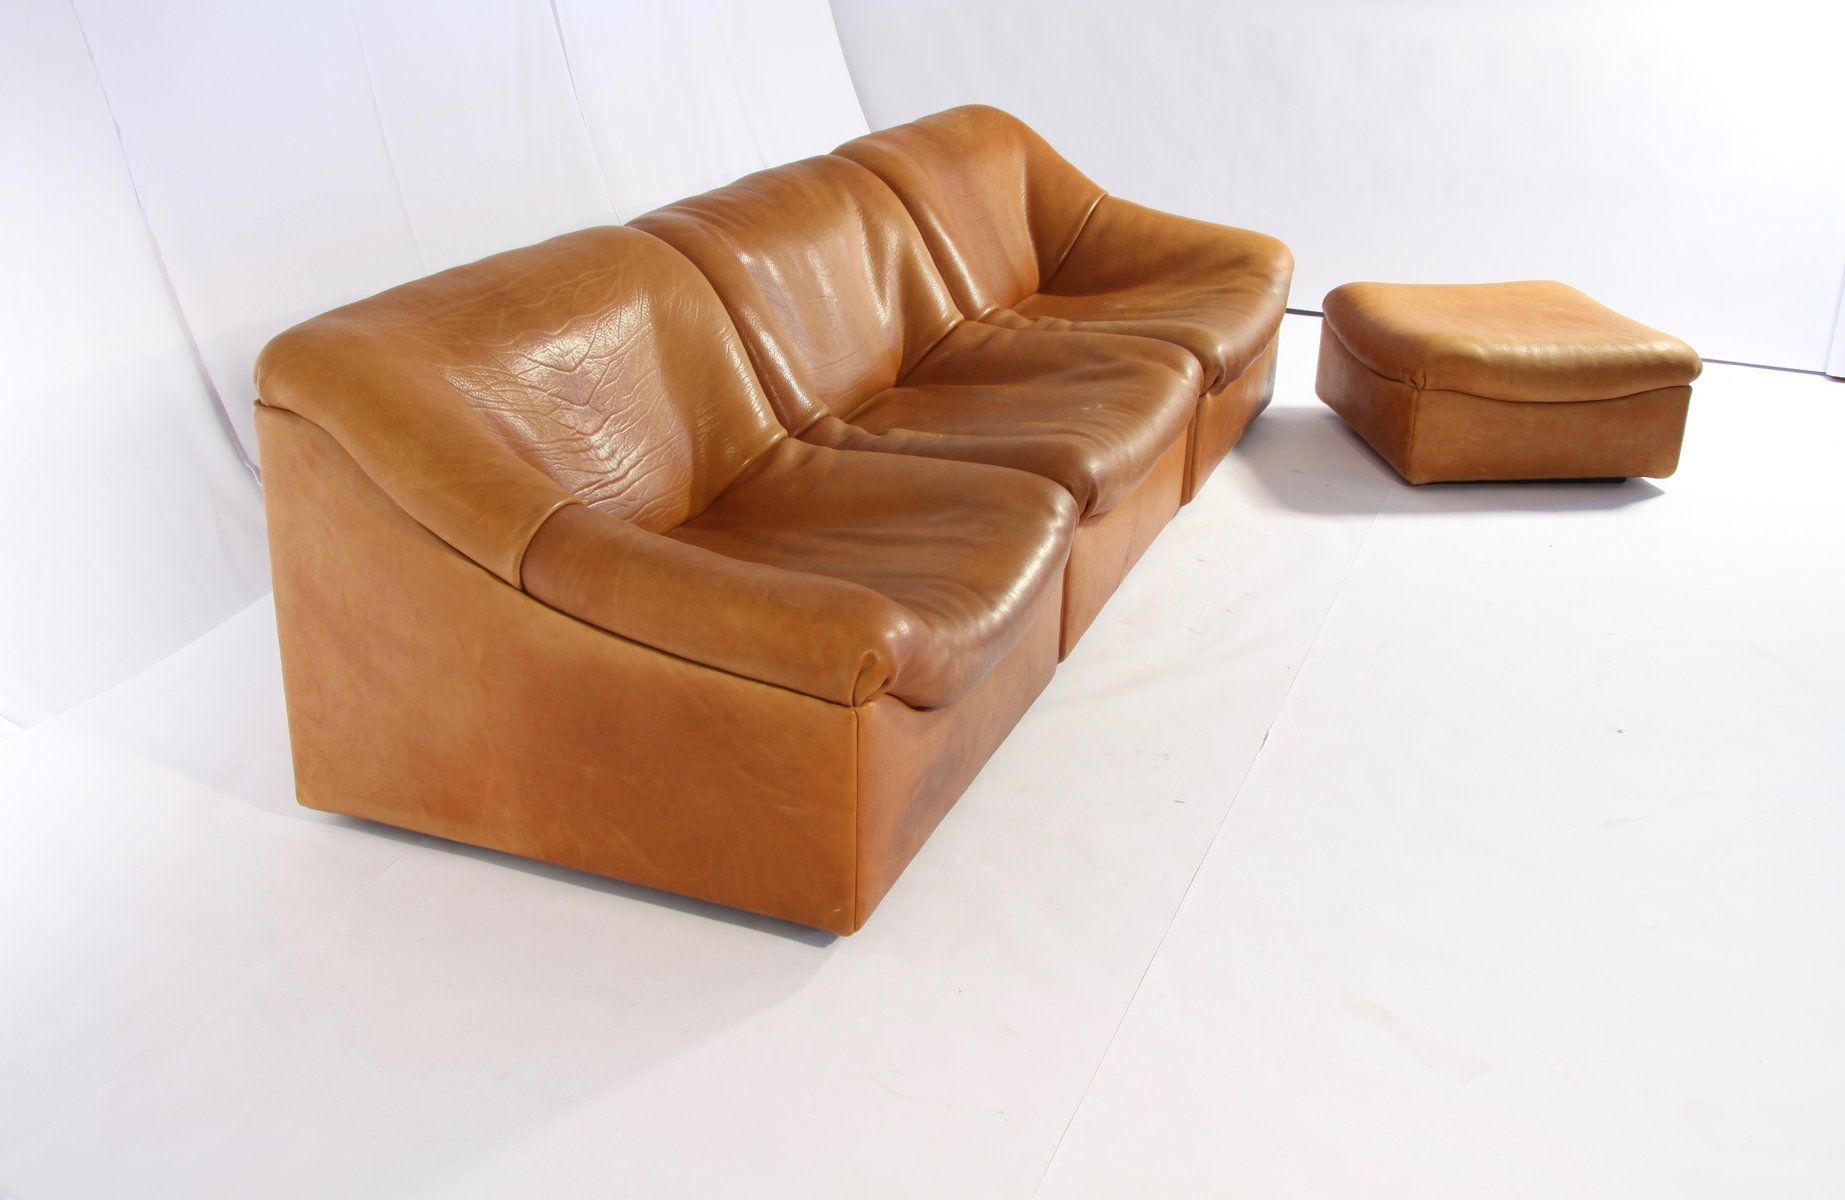 DS 46 Thick Buffalo Leather Lounging Chairs from de Sede 1970s